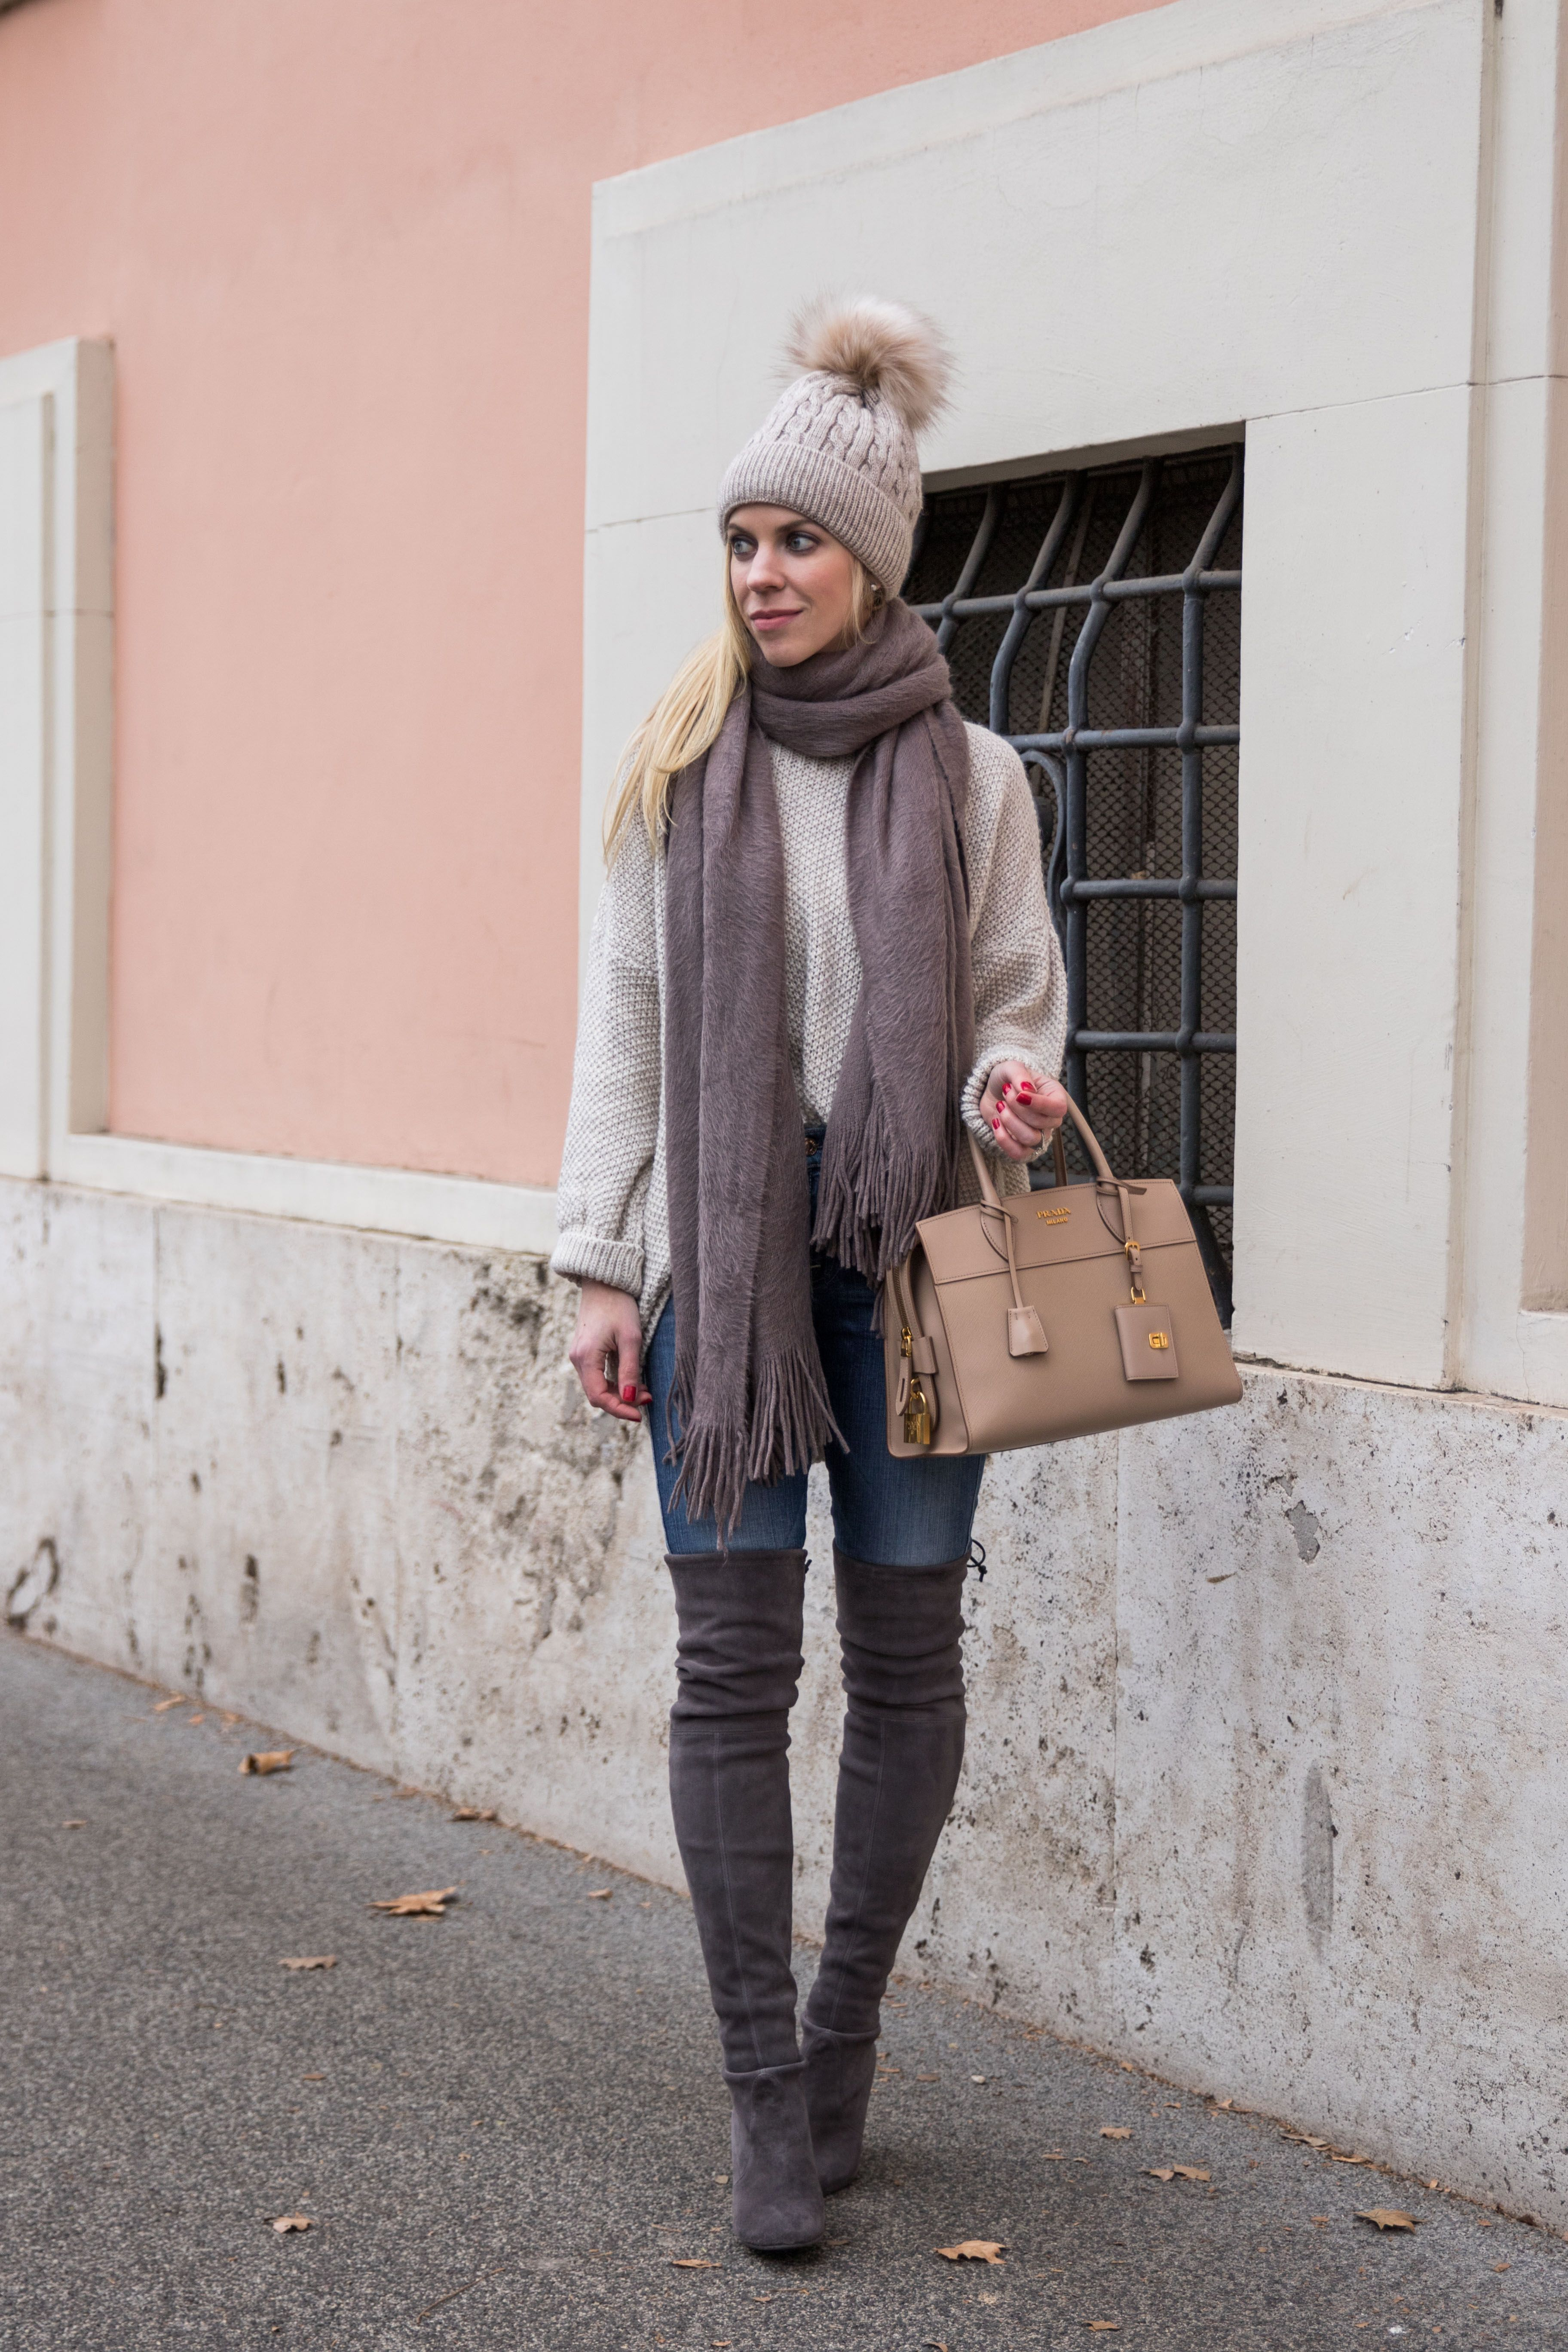 972cb032db3c70 Meagan Brandon fashion blogger wearing oversized layers beige sweater with  oversized scarf and pom hat